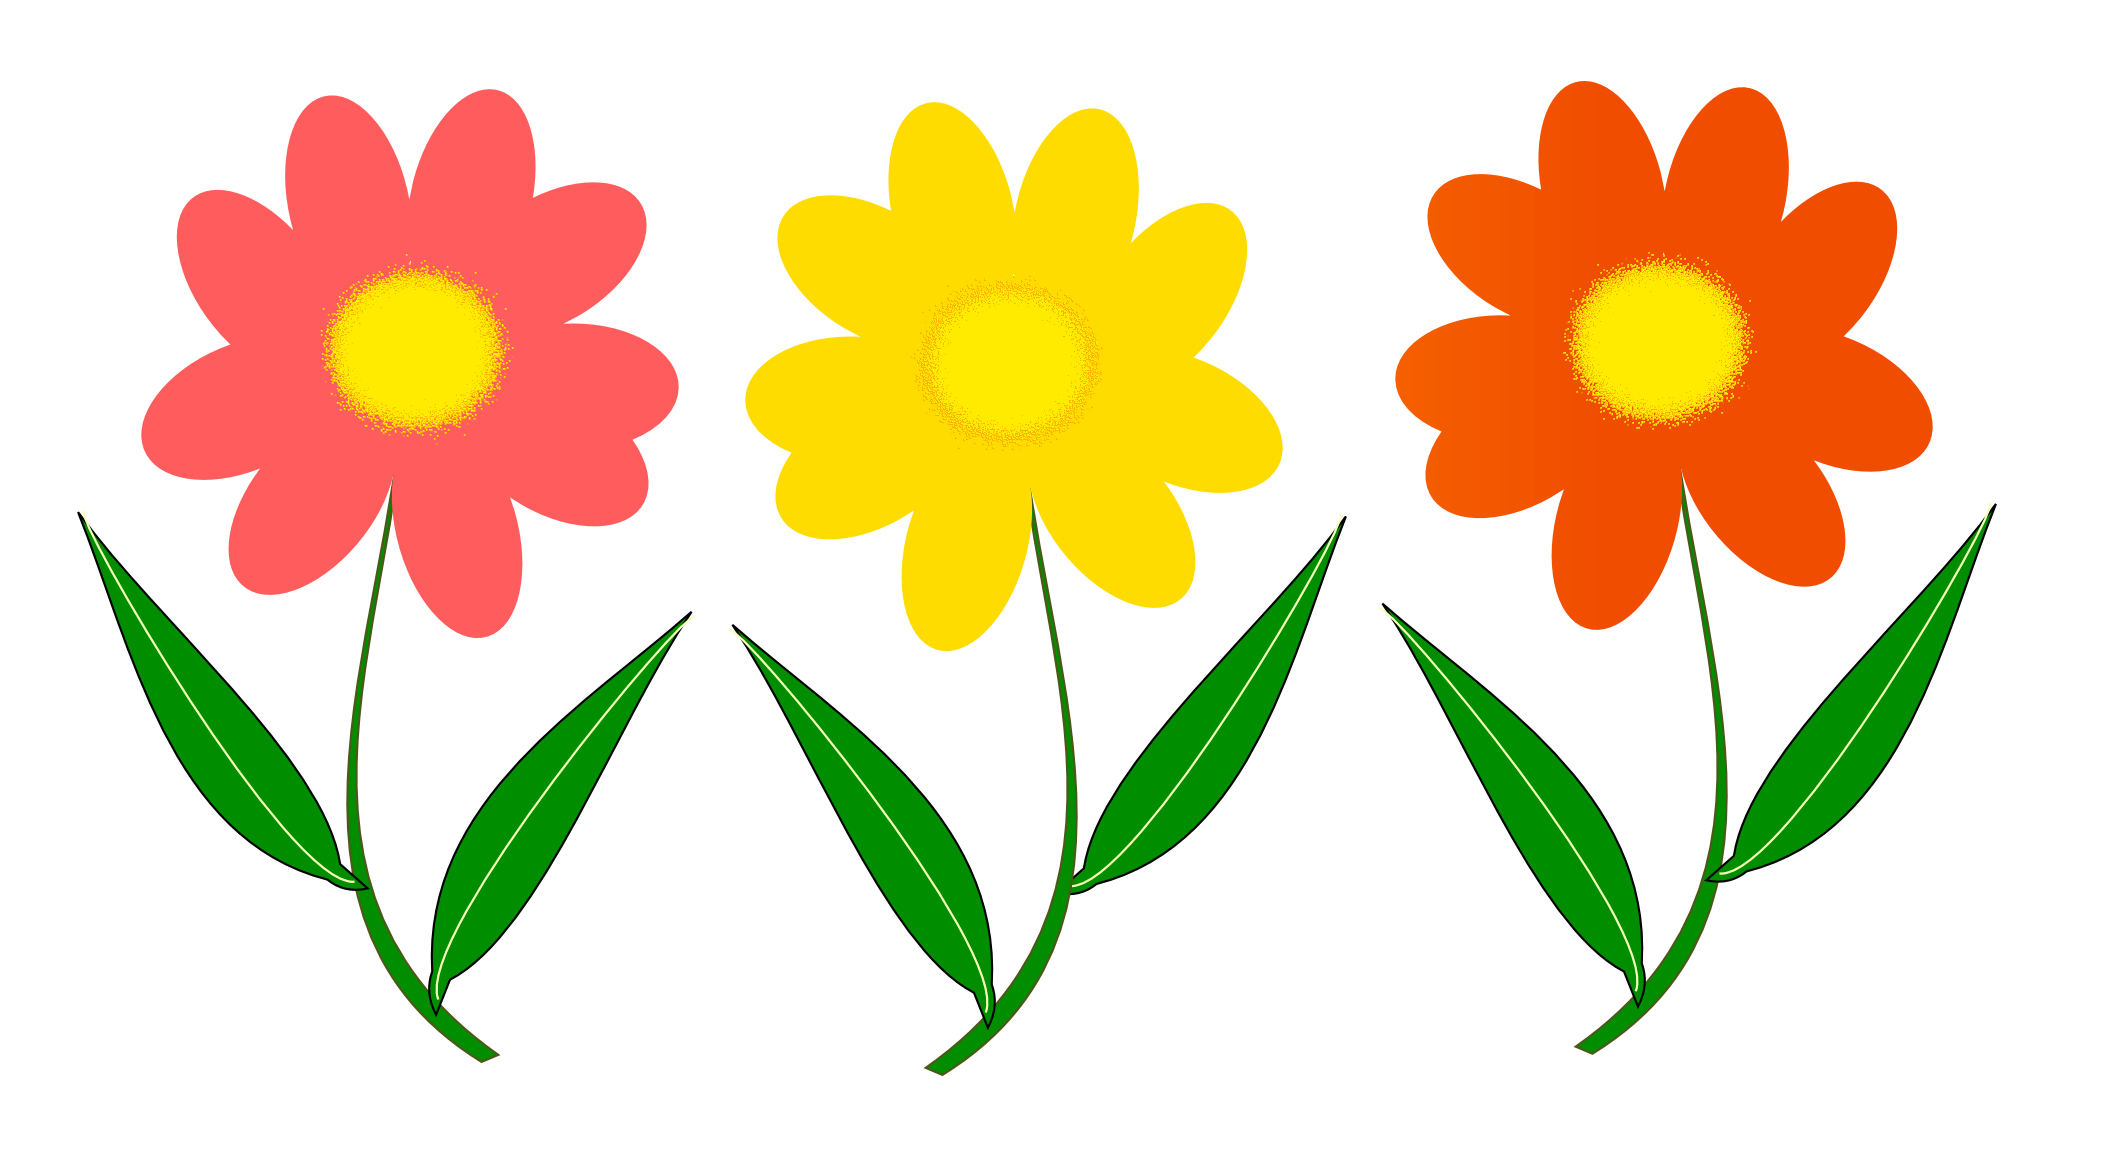 Download Flower Vector Png Image For Free Flower Clipart Vector Png